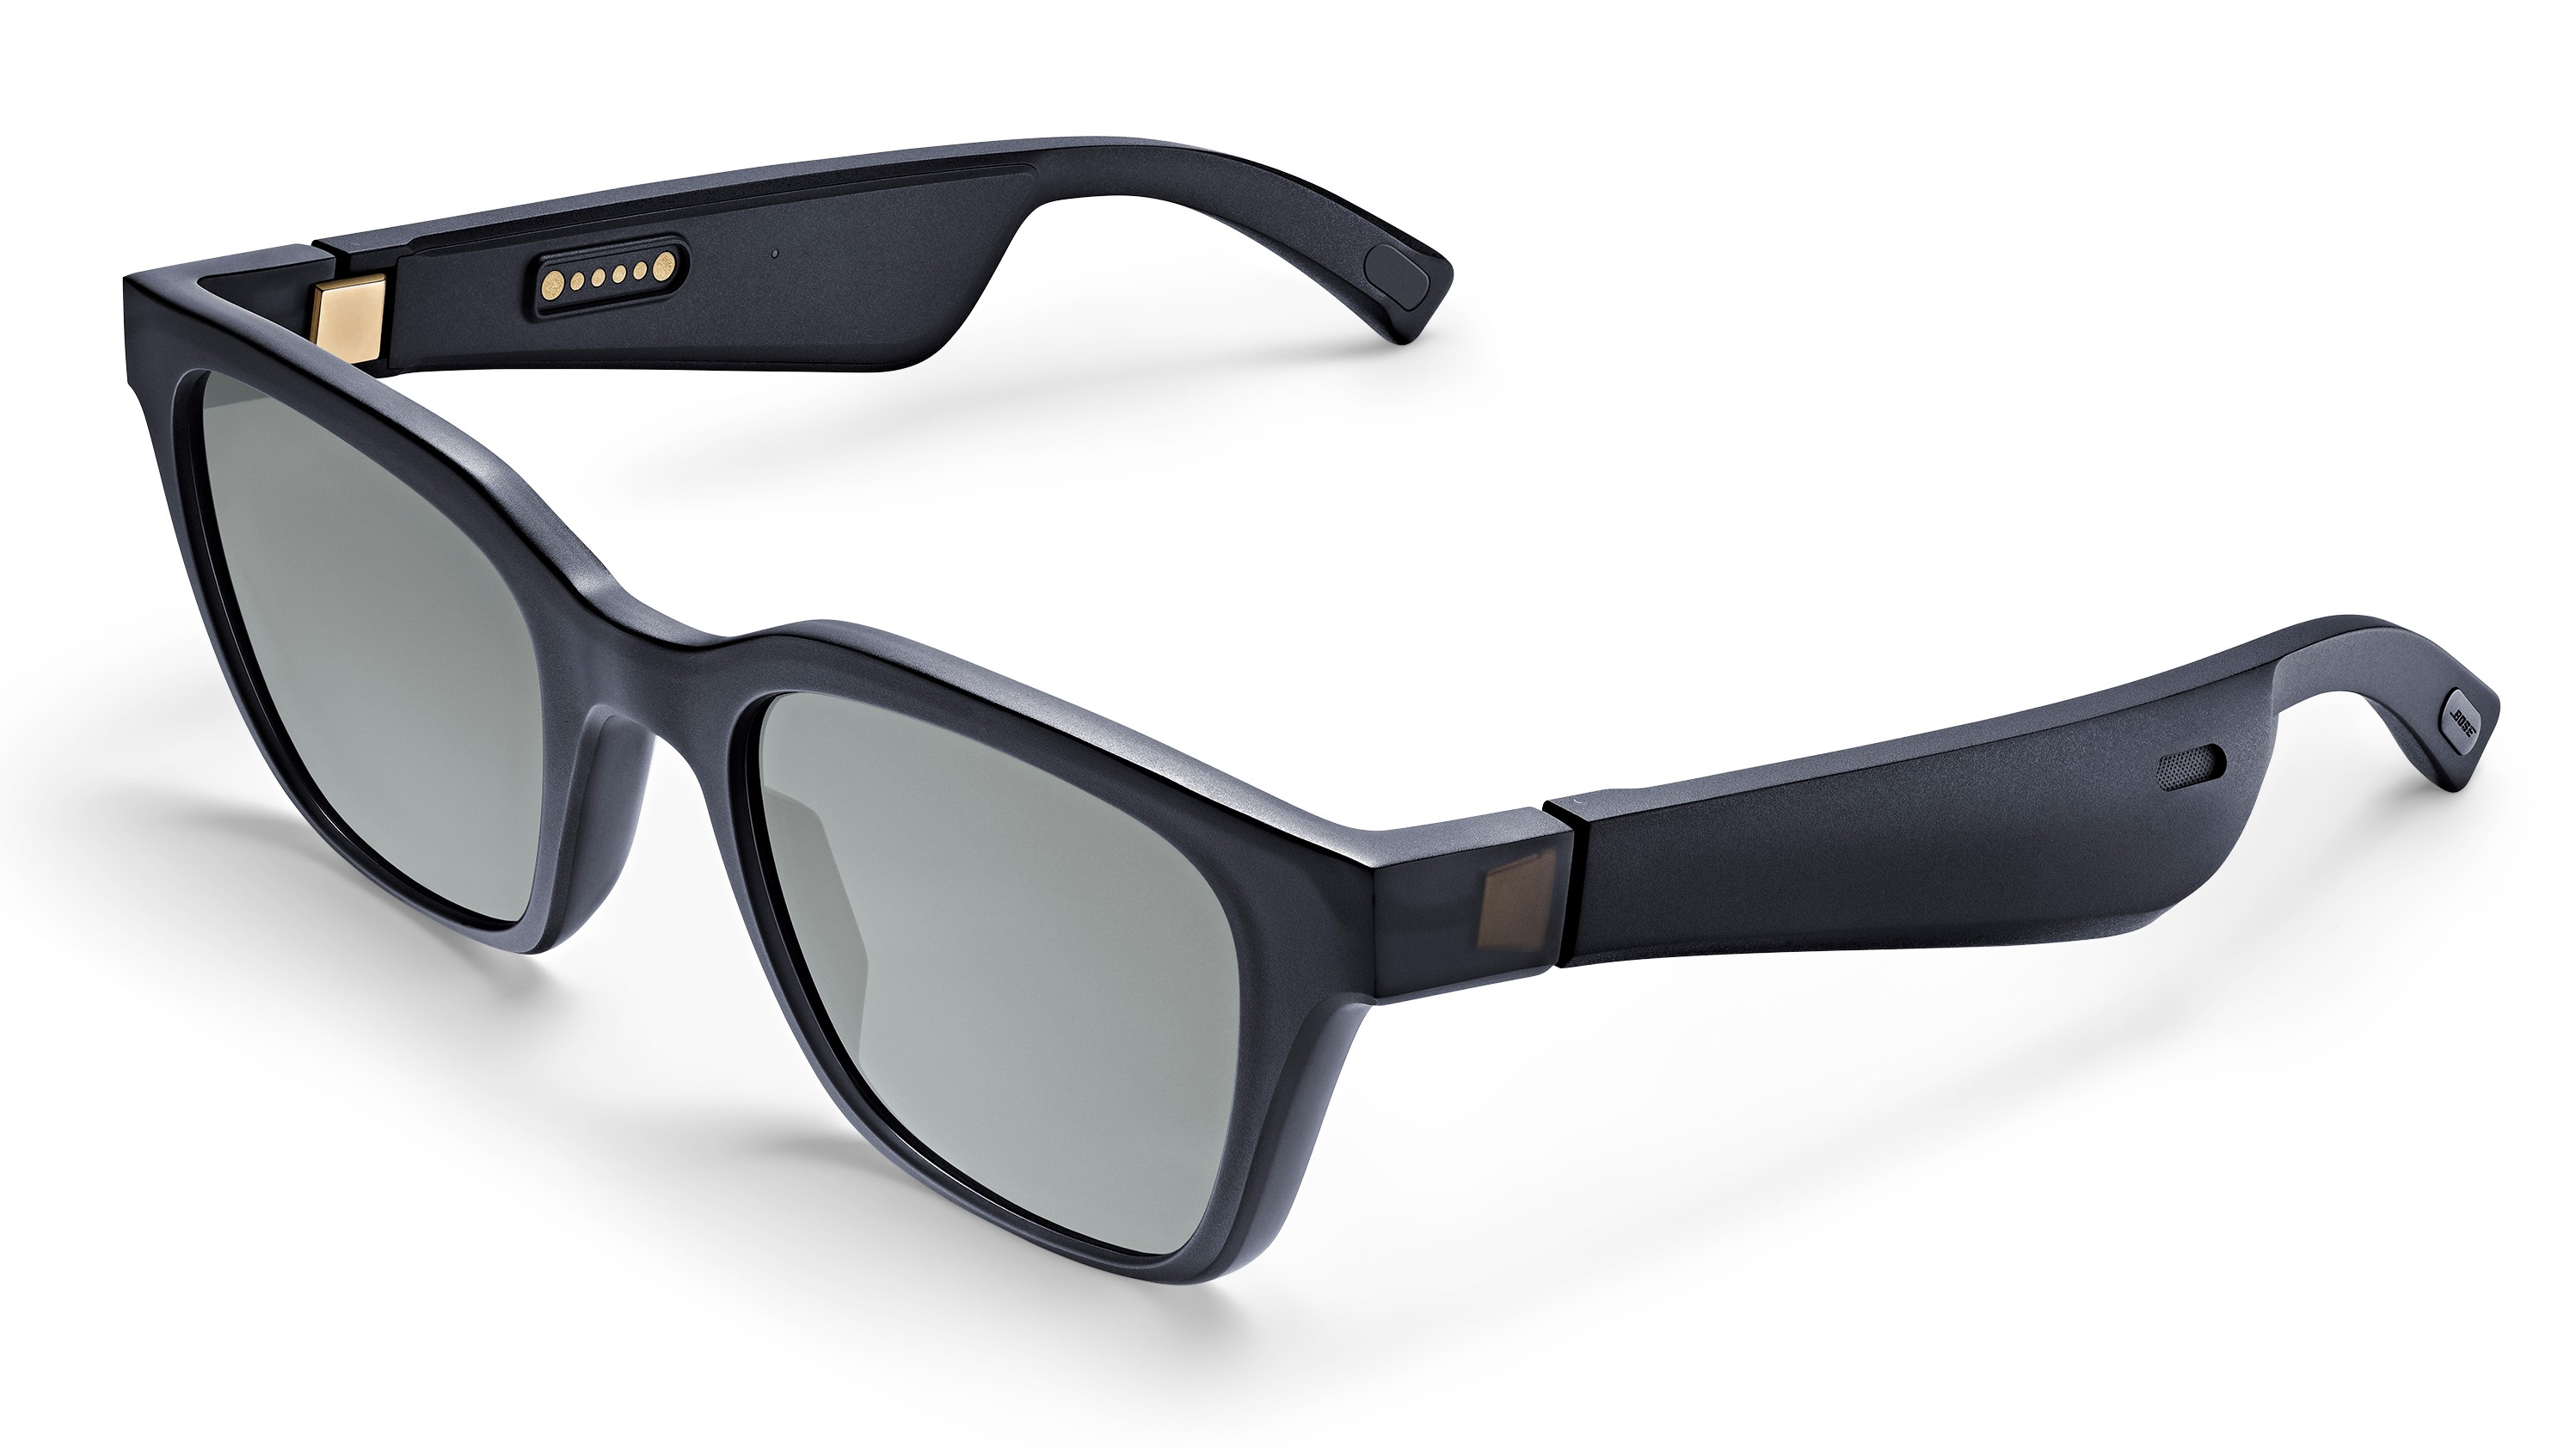 Bose Frames combine headphones, sunglasses and... augmented reality?